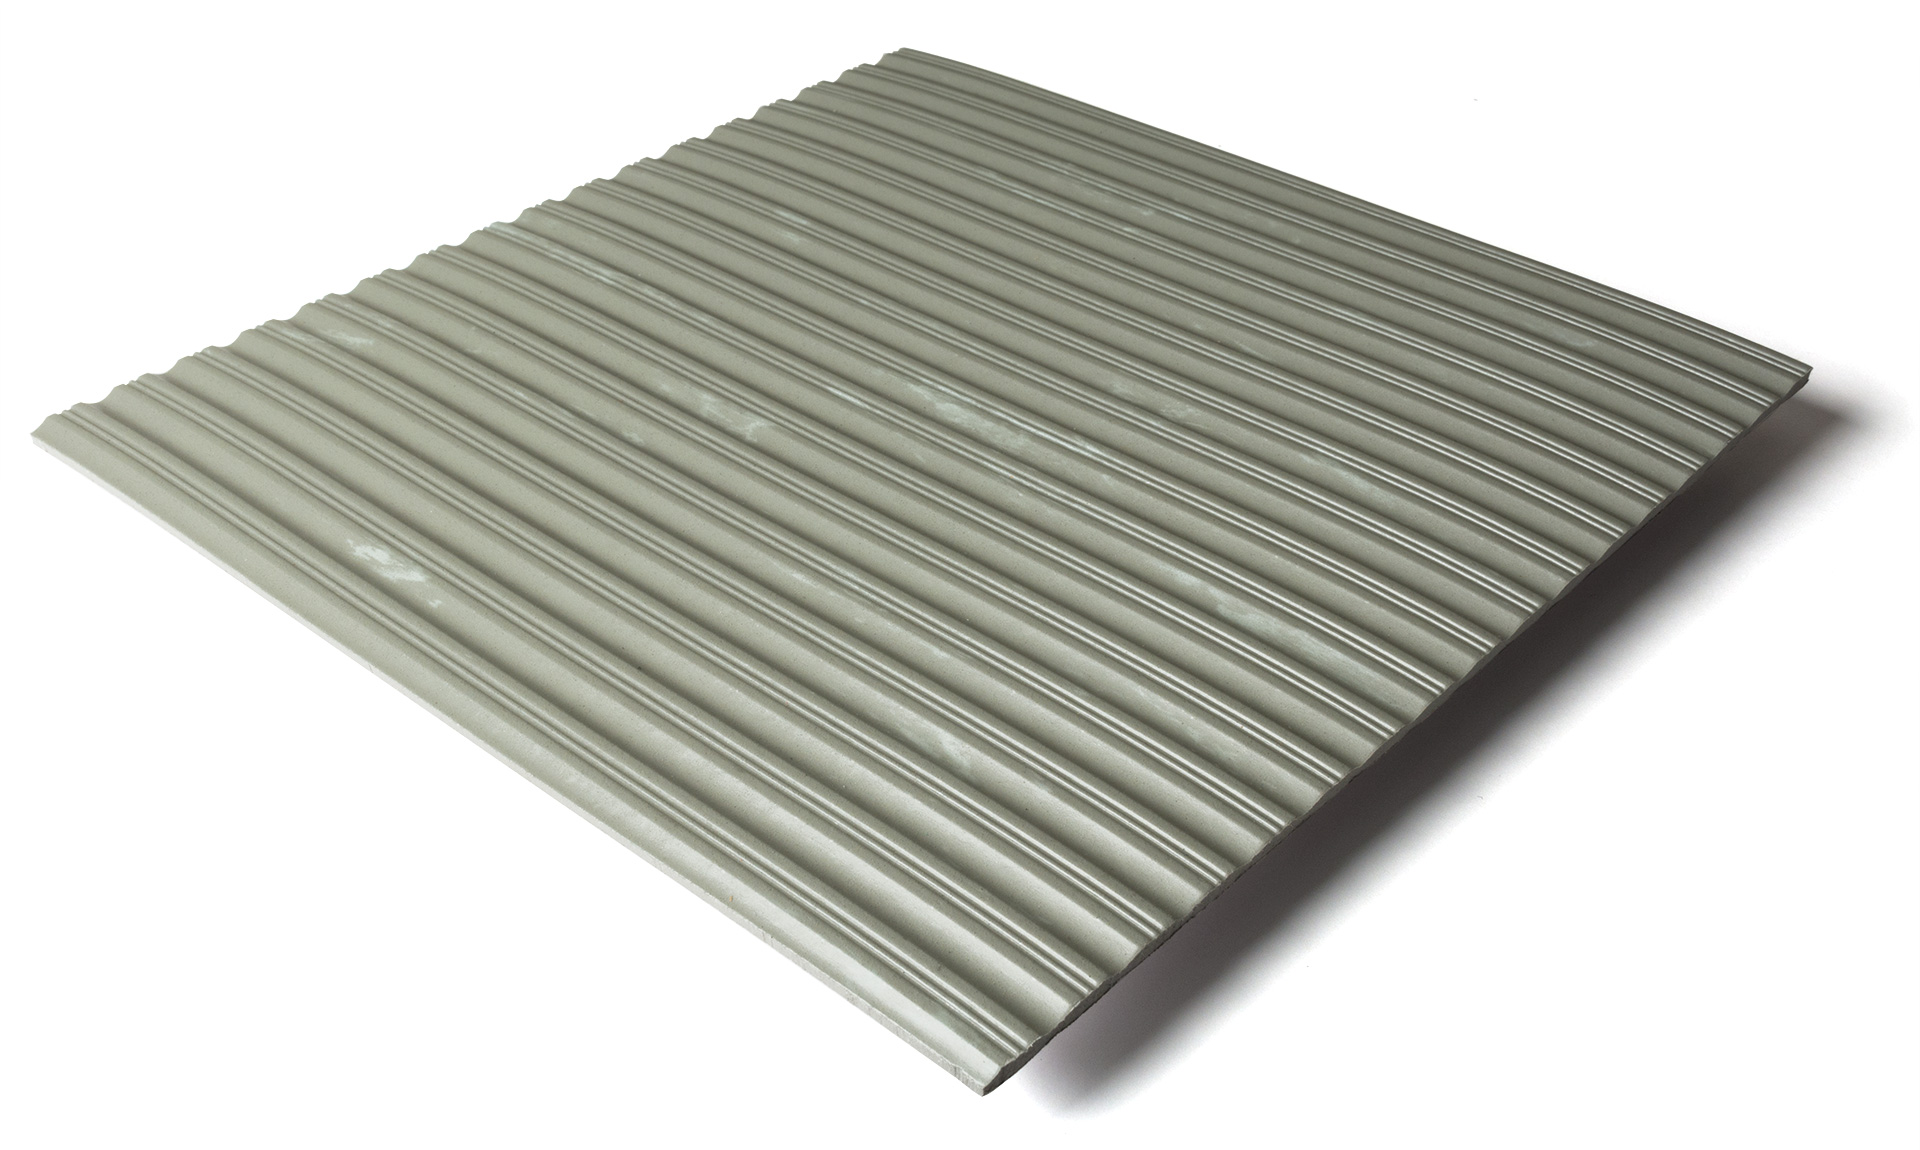 Standard transit flooring in marbled light gray, ribbed